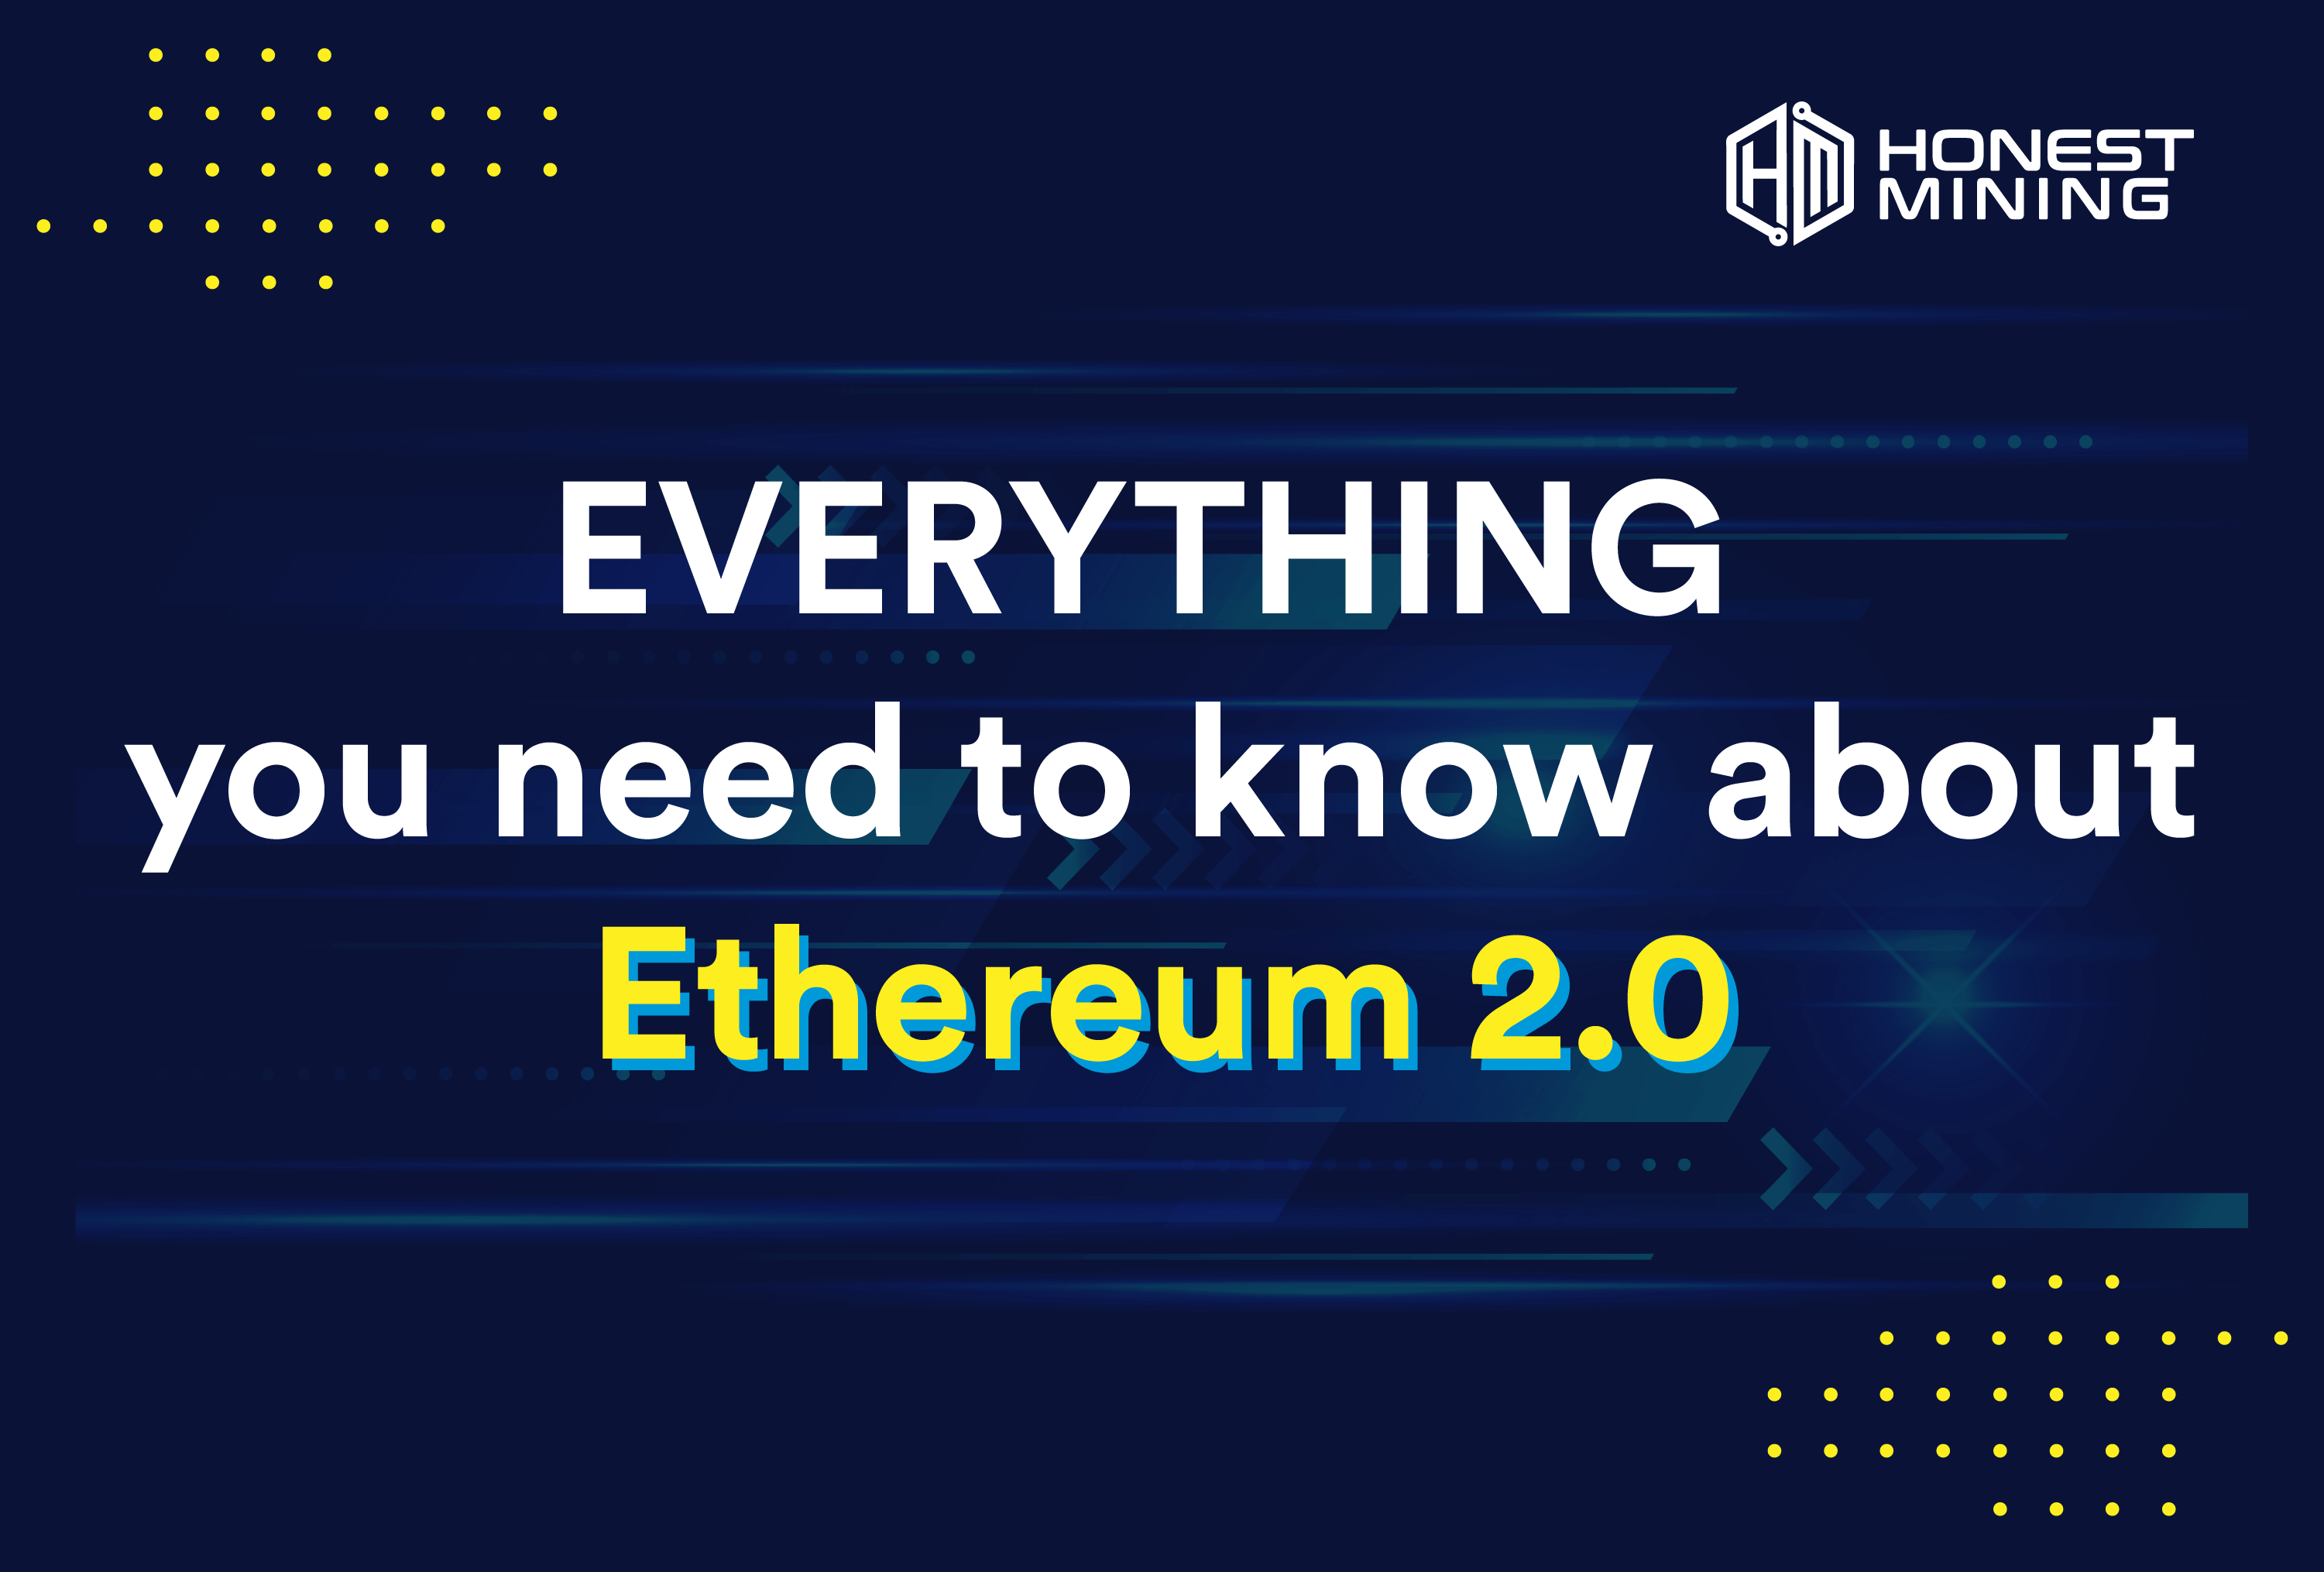 Everything you need to know about Ethereum 2.0